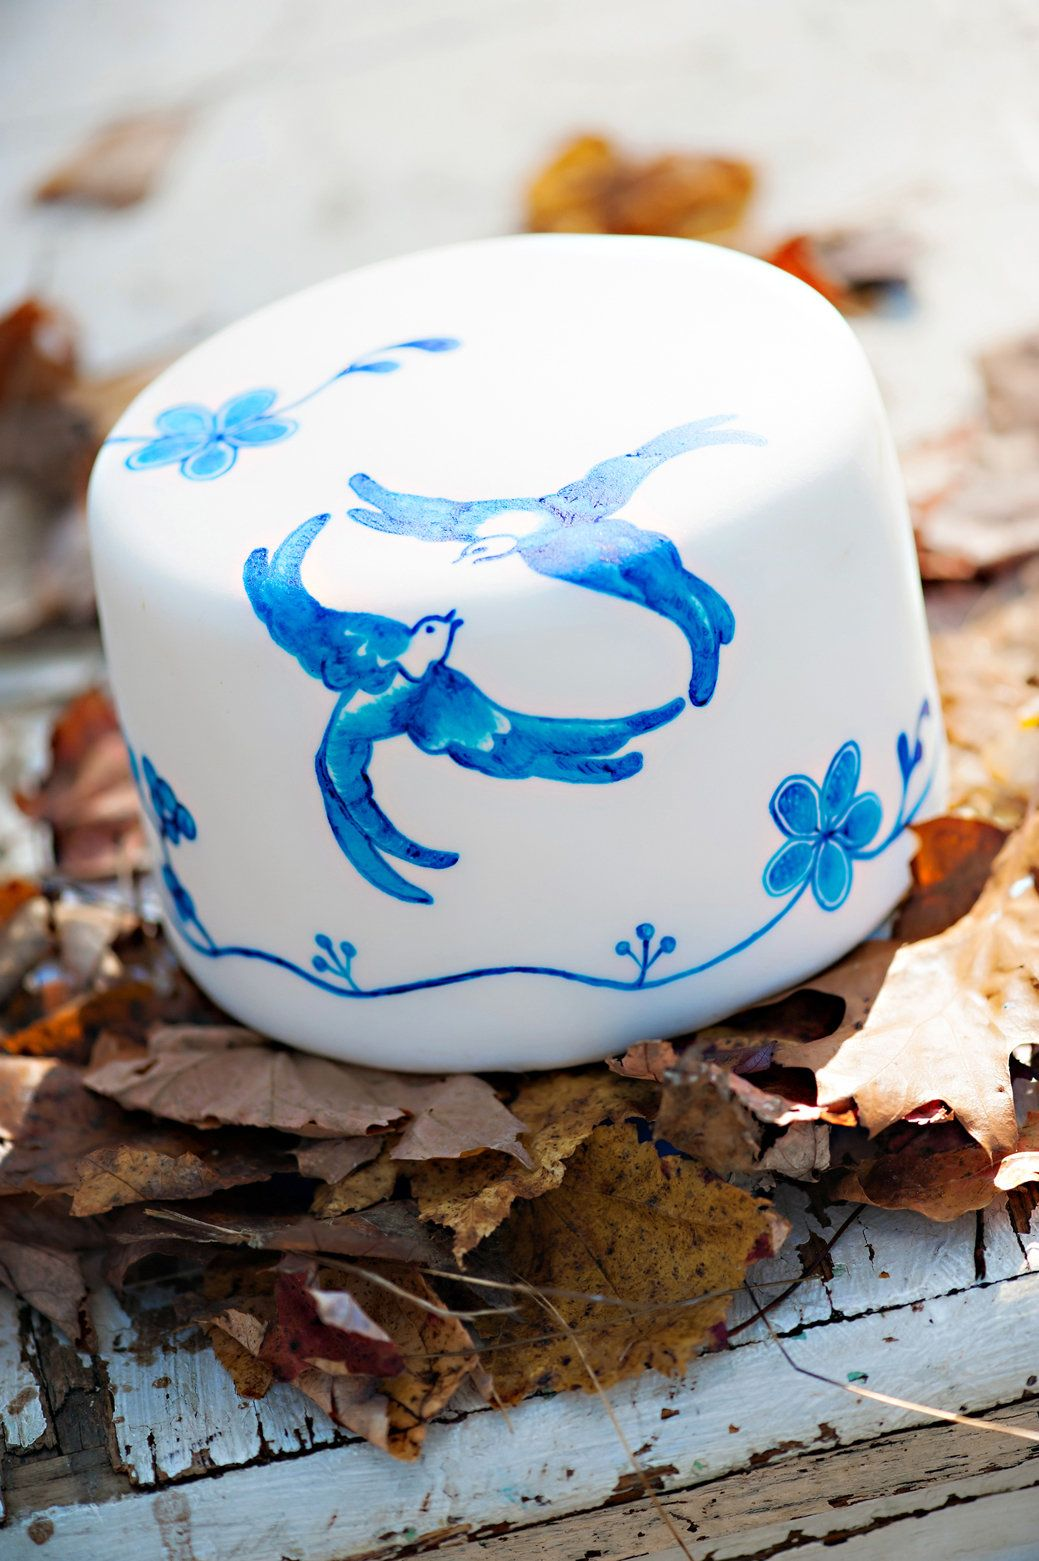 Hand painted blue willow inspired design on this cake is amazing!